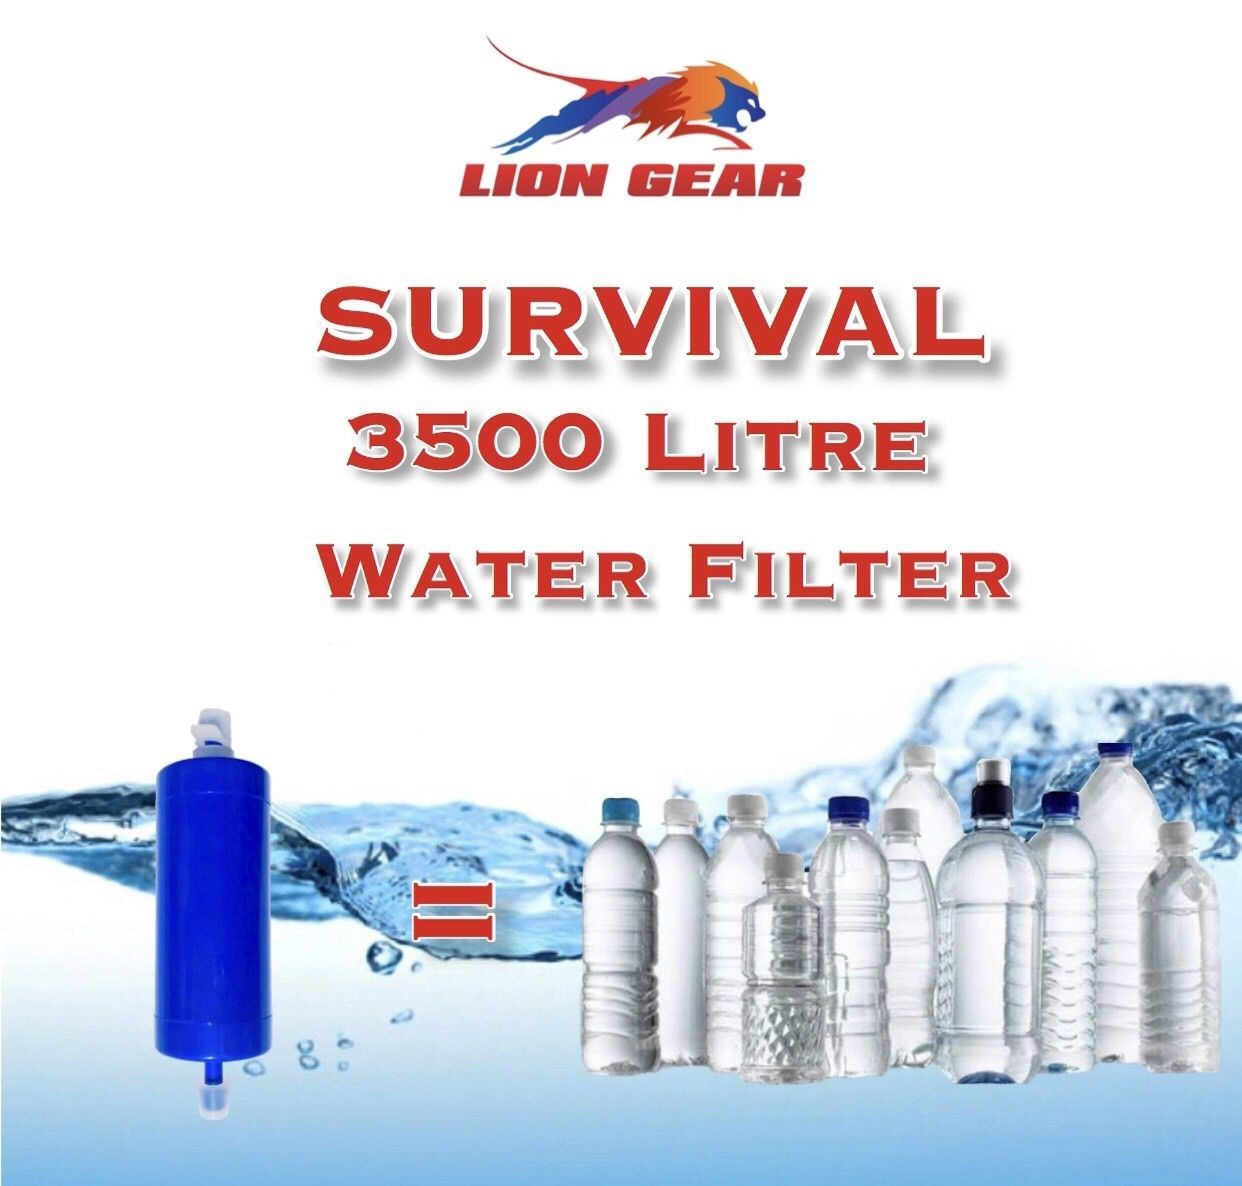 Military 3500 Liter Survival Water Filter With Hose & Rinsing Syringe - Outback Tactical